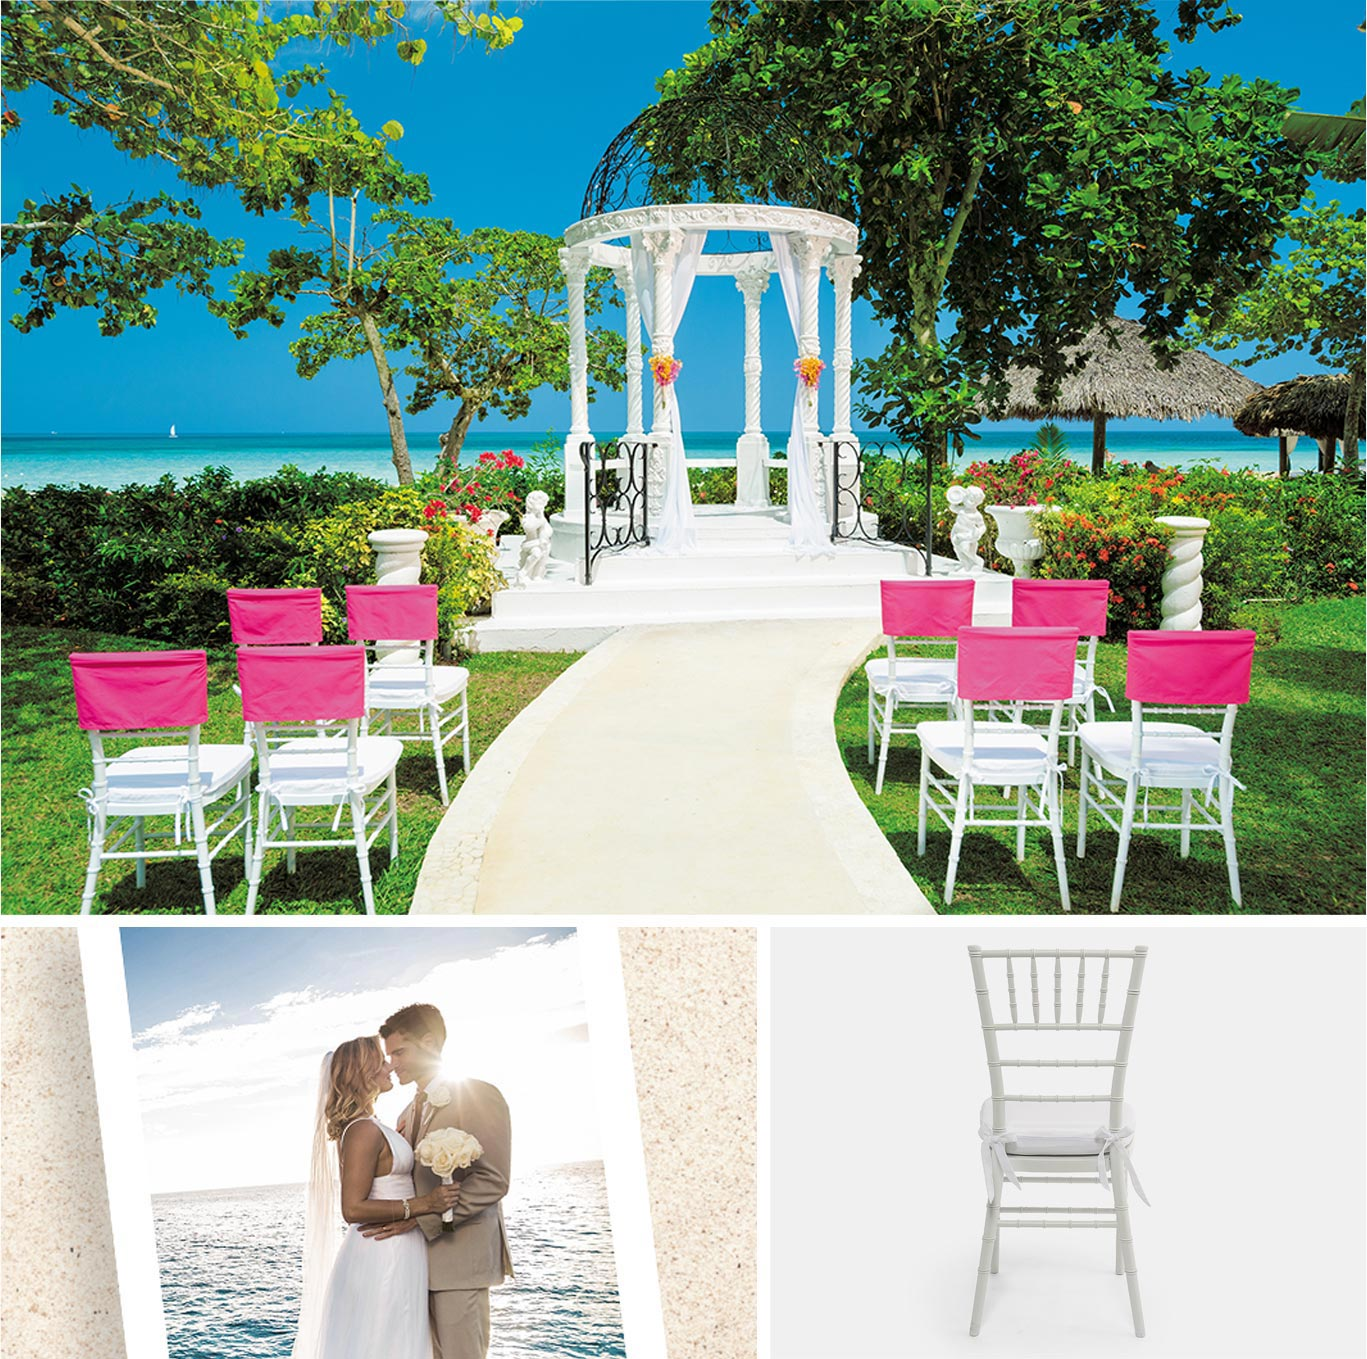 Get a free caribbean wedding with a 3 night stay at sandals ceremony junglespirit Image collections